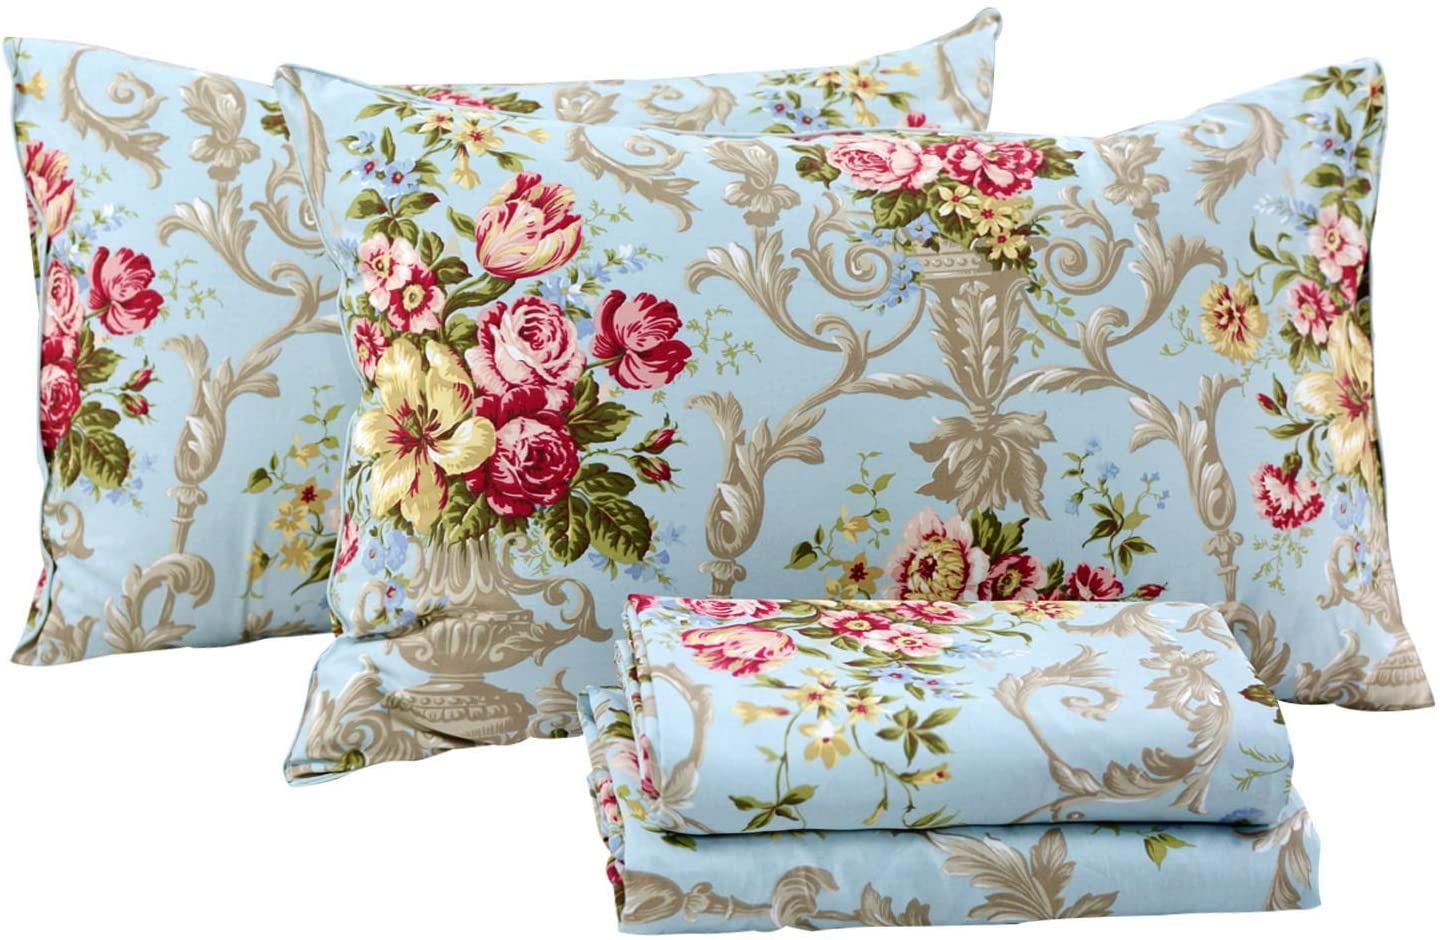 FADFAY Shabby Floral Bedding Elegant Peony Sheets Set Luxury Bedding Collections 800 Thread Count 100% Egyptian Cotton Deep Pocket, 4 Piece-Queen Size